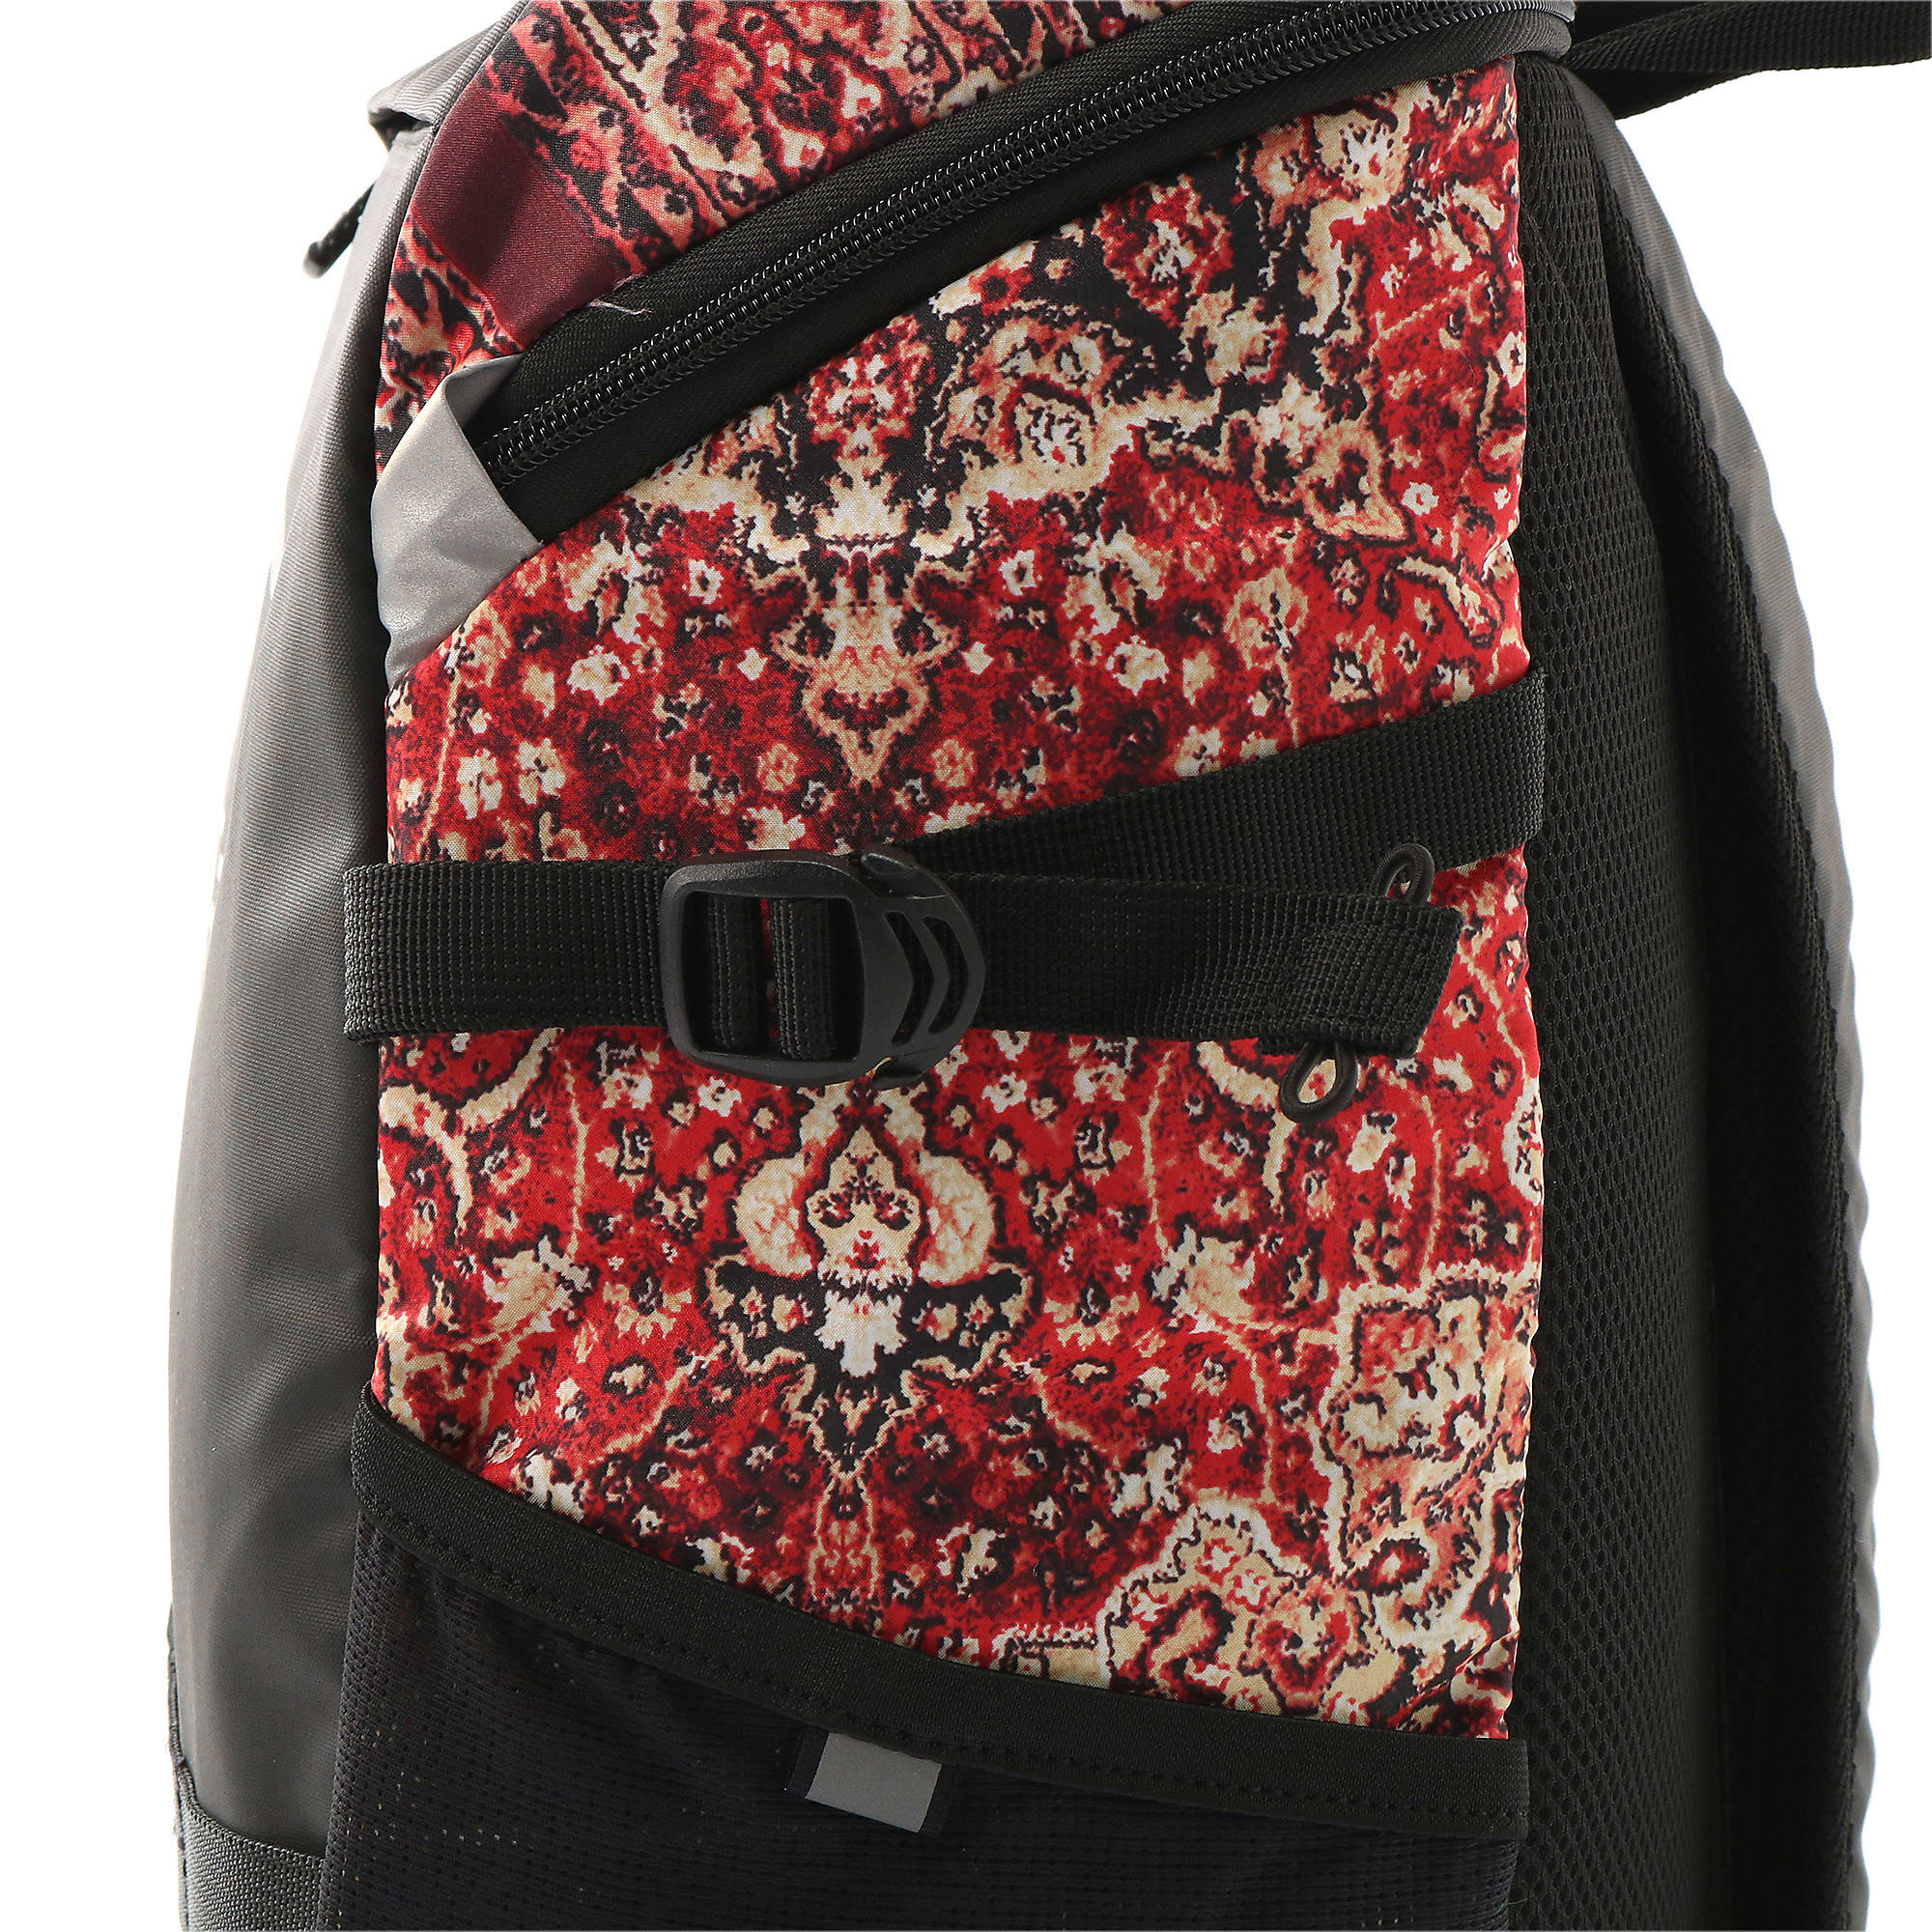 Thumbnail 7 of PUMA x LES BENJAMINS Backpack, Puma Black-AOP, medium